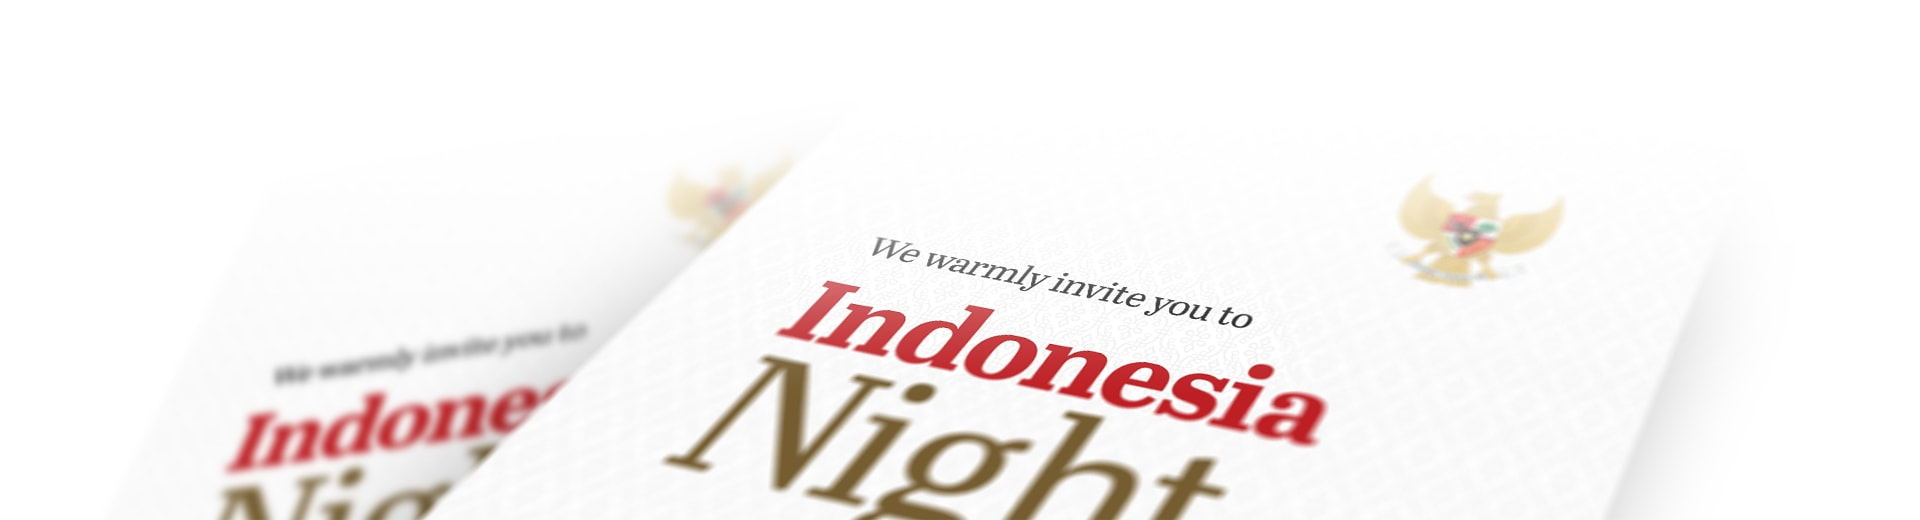 indonesia night brochure